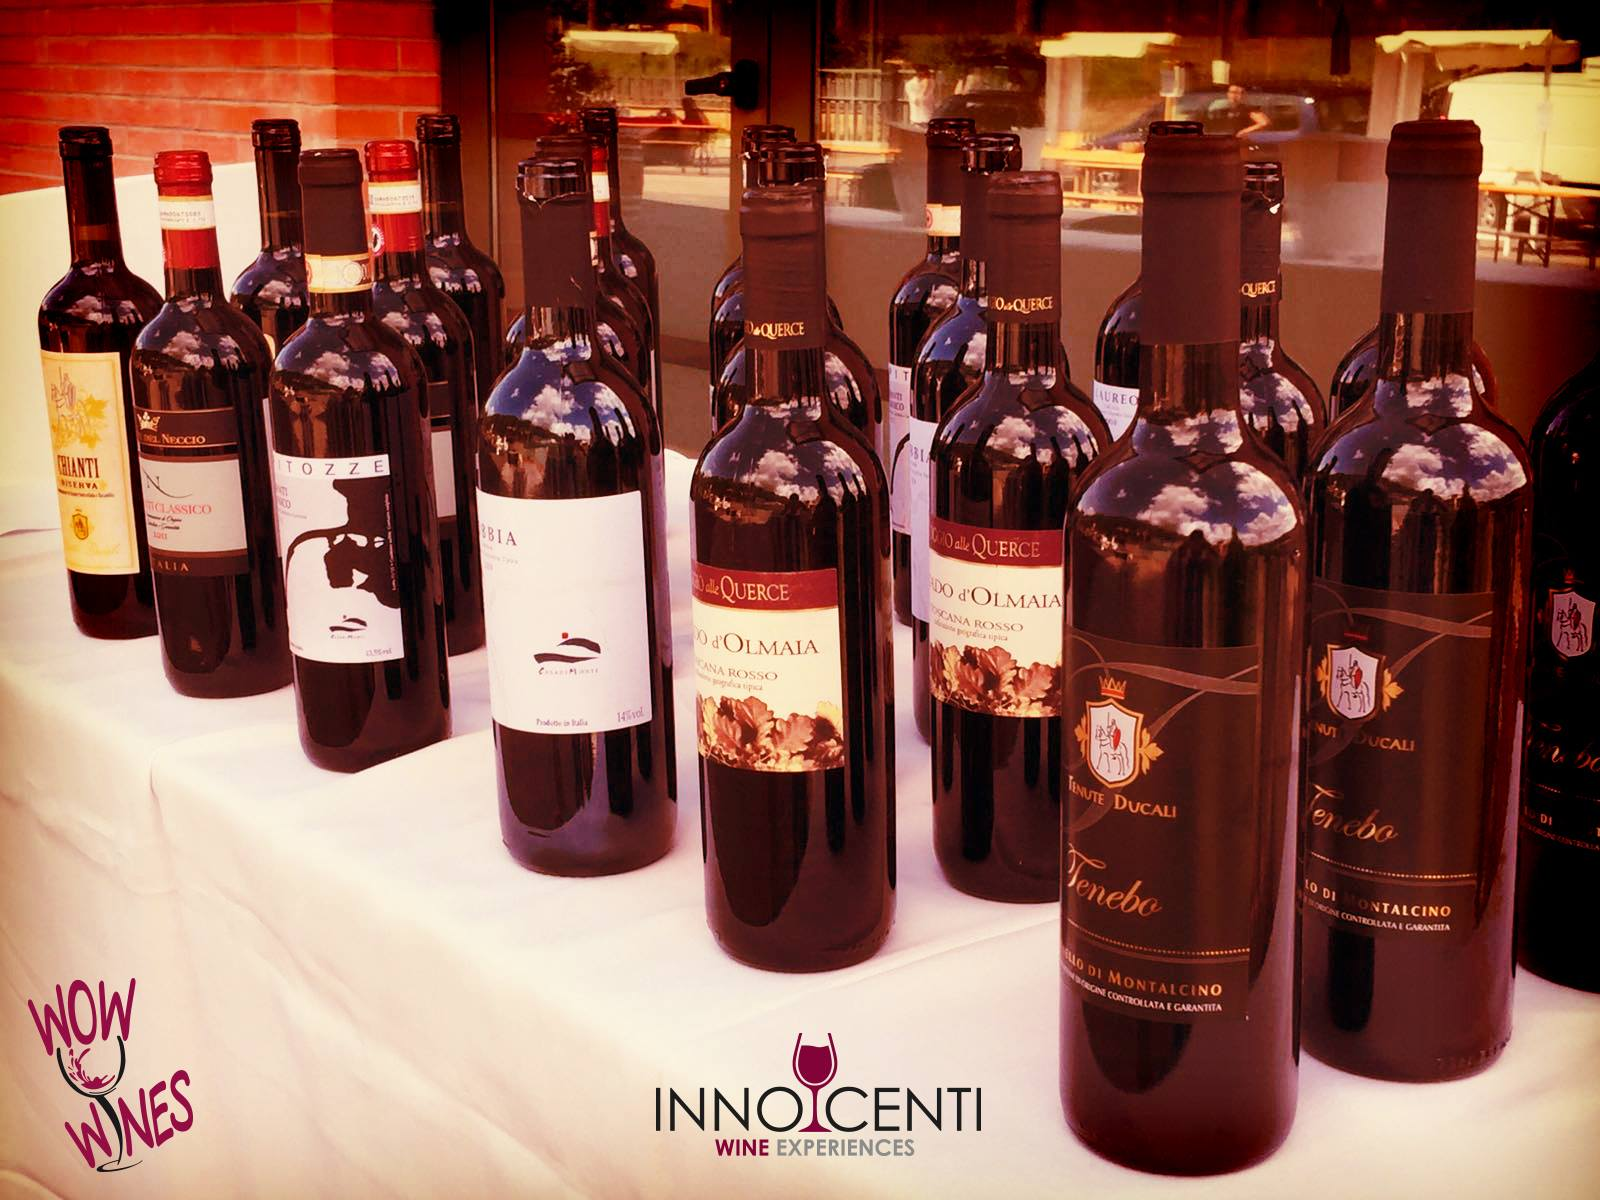 Wowines, Innocenti Wines